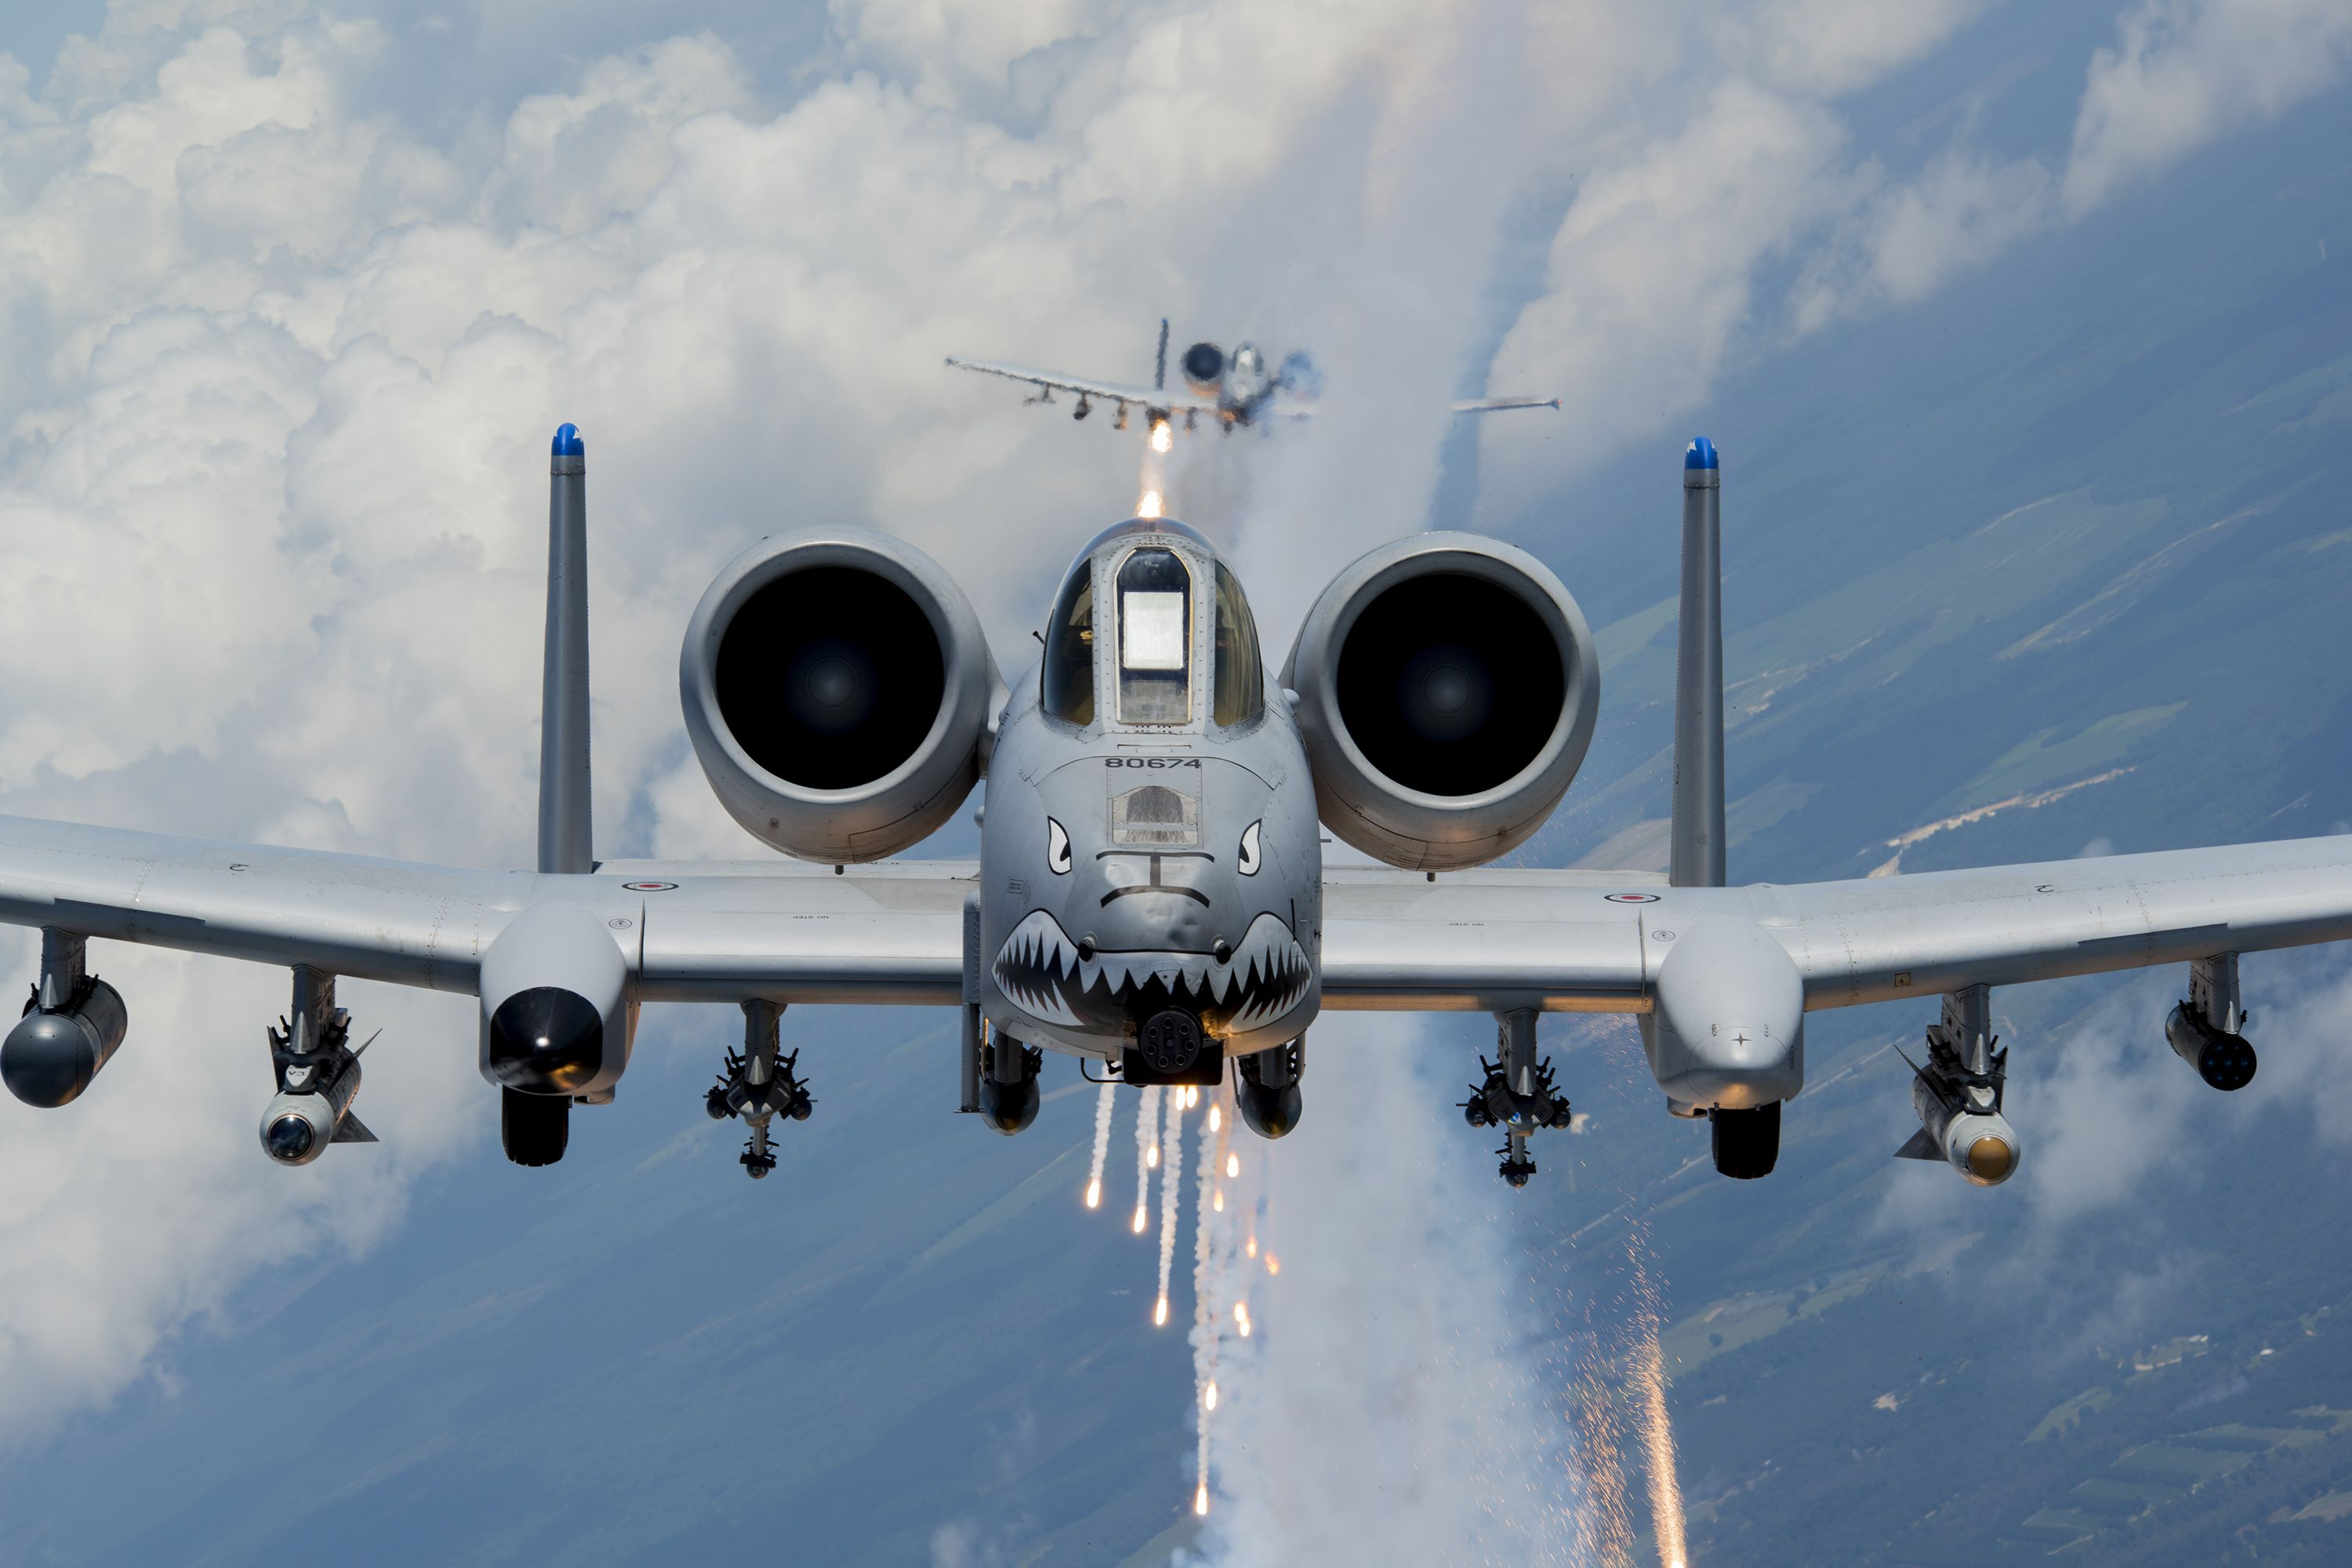 U.S. Air Force Capts. Andrew Glowa, lead, and William Piepenbring, both with the 74th Fighter Squadron out of Moody Air Force Base, Ga., fly two A-10C Thunderbolt II over the skies of southern Georgia, Aug. 18, 2014. Since it was first delivered to Davis-Monthan Air Force Base, Ariz., in October 1975, the A-10 has participated in operations Desert Storm, Southern Watch, Provide Comfort, Desert Fox, Noble Anvil, Deny Flight, Deliberate Guard, Allied Force, Enduring Freedom and Iraqi Freedom.